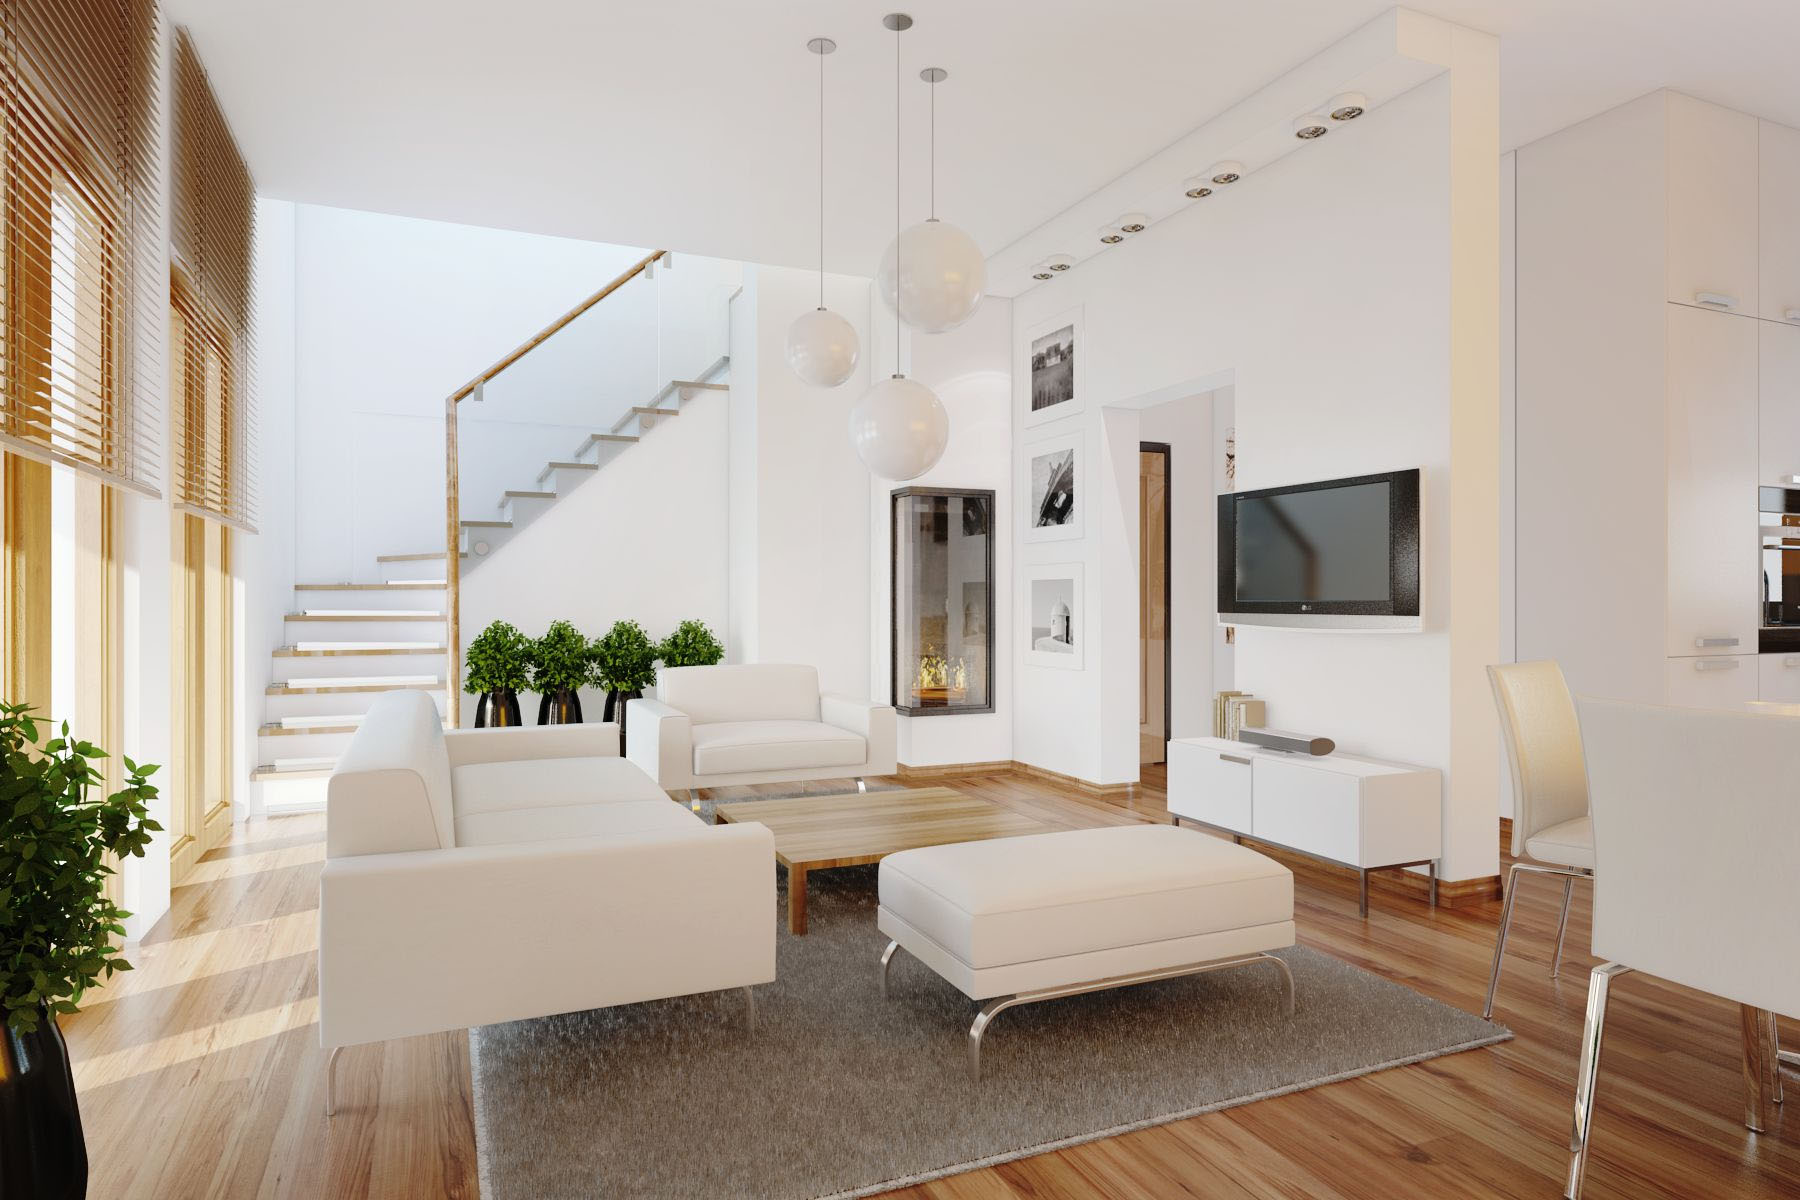 Impressive Sofa also Wooden Coffee Table For Living Room Layouts